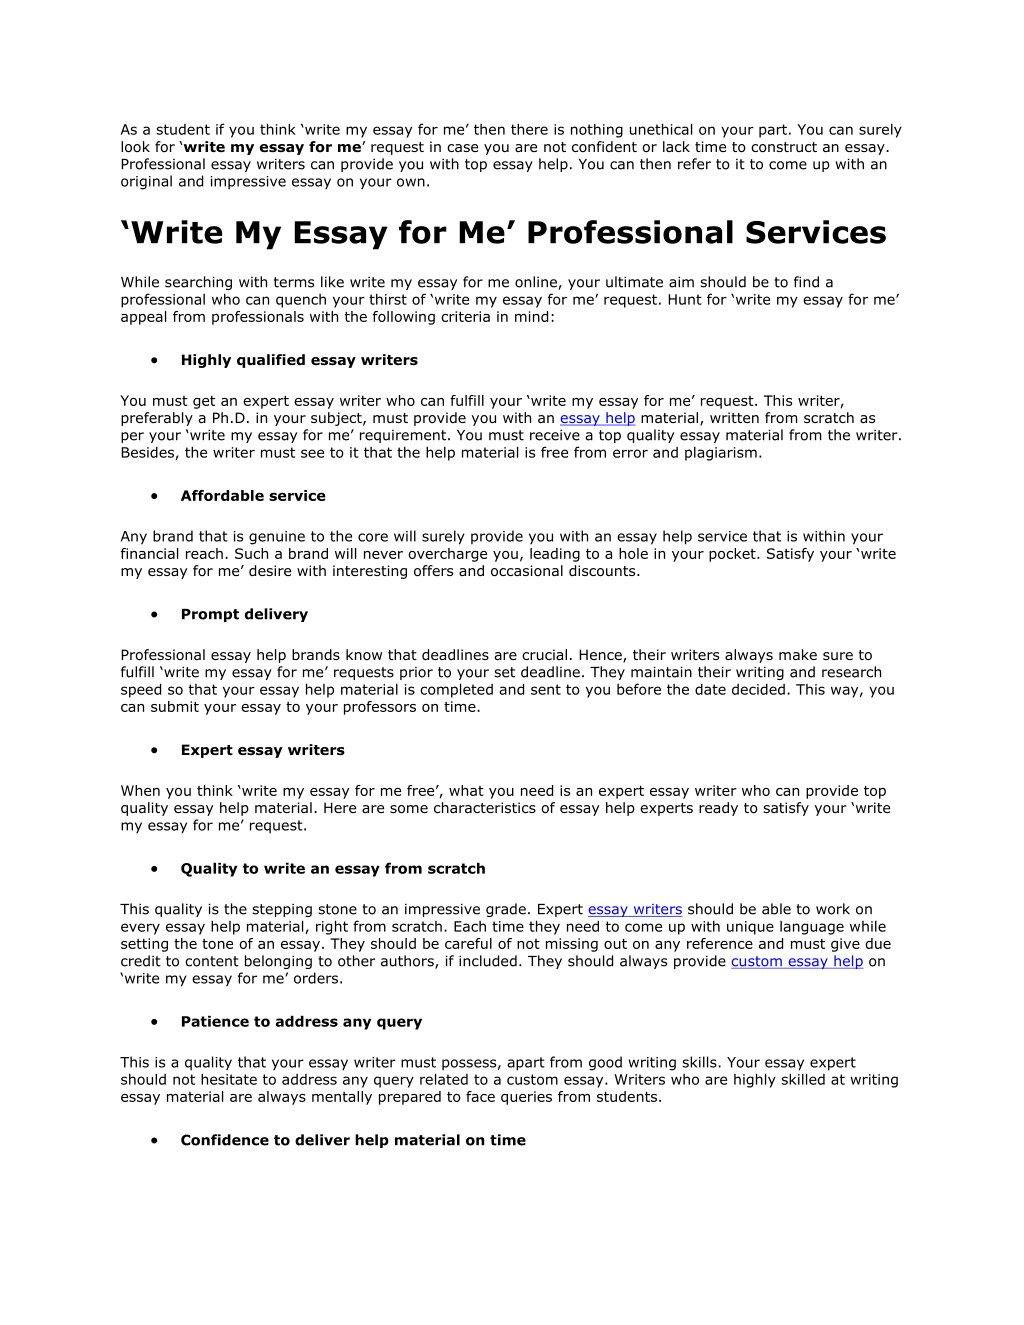 006 Essay Example Write For Me As Student If You Think My Amazing Generator Free Online Full